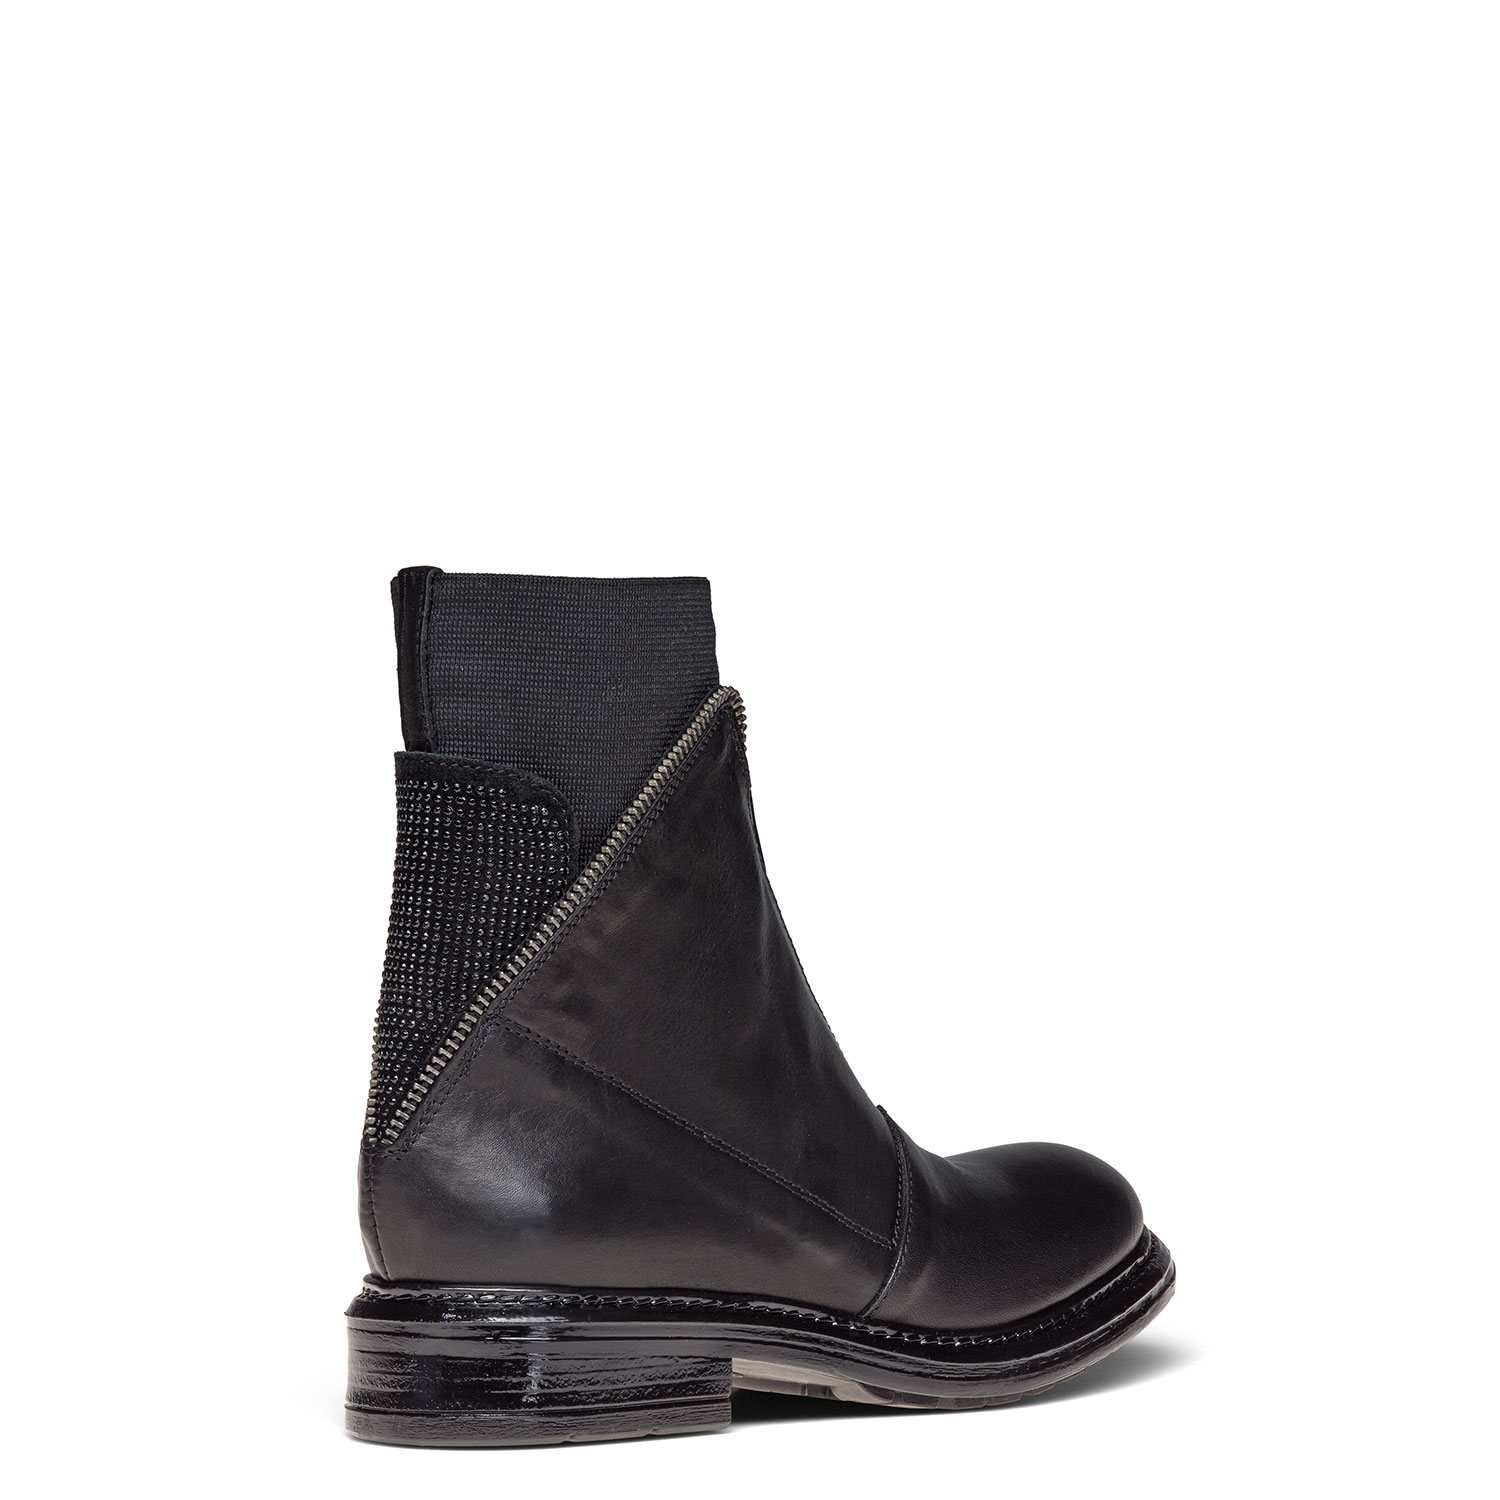 Women's ankle boots CARLO PAZOLINI TO-X1629-1